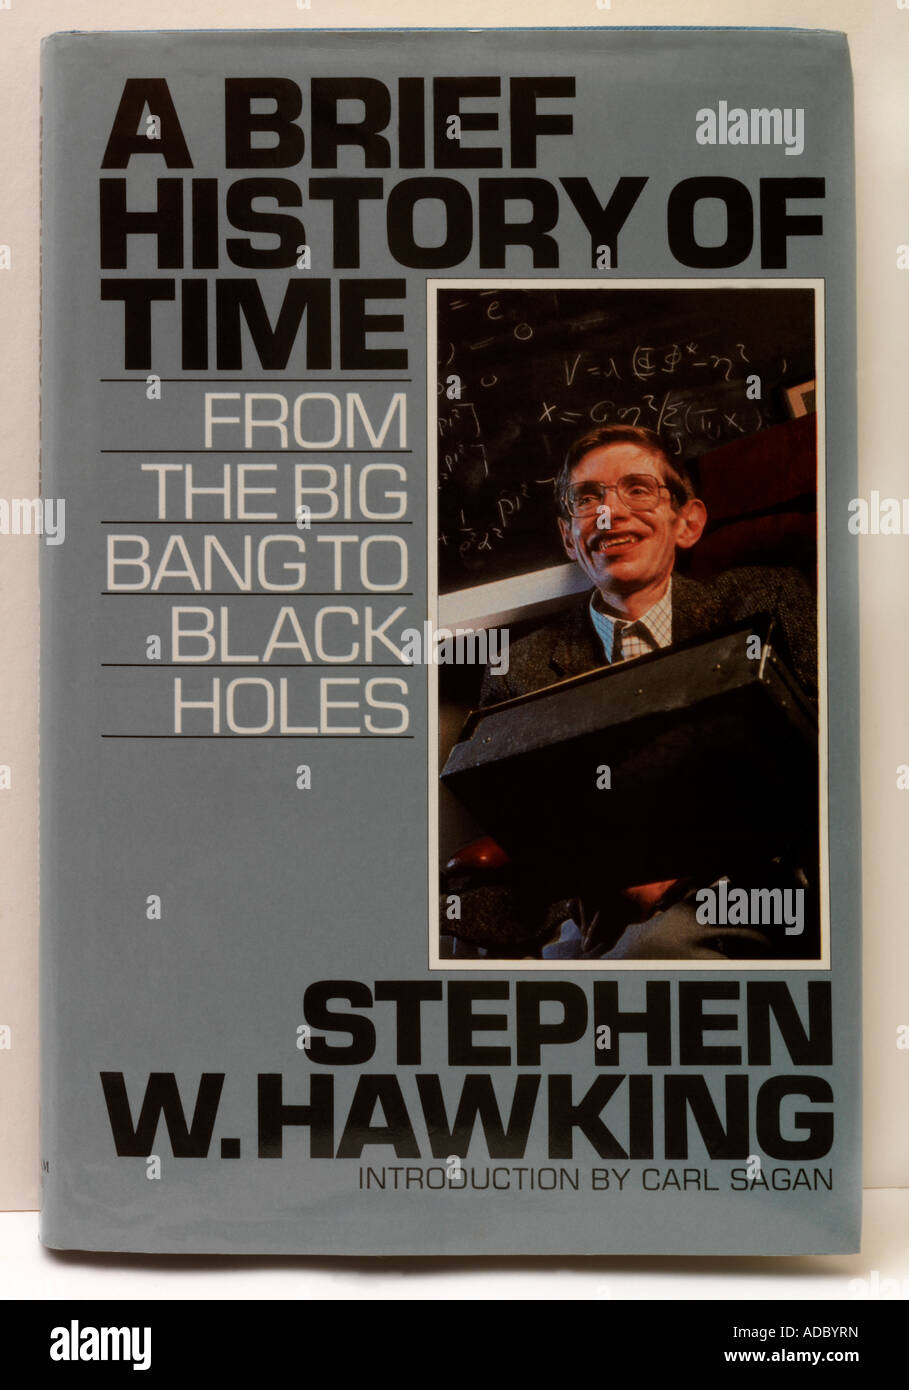 A Brief History Of Time By Stephen Hawking Stock Photo